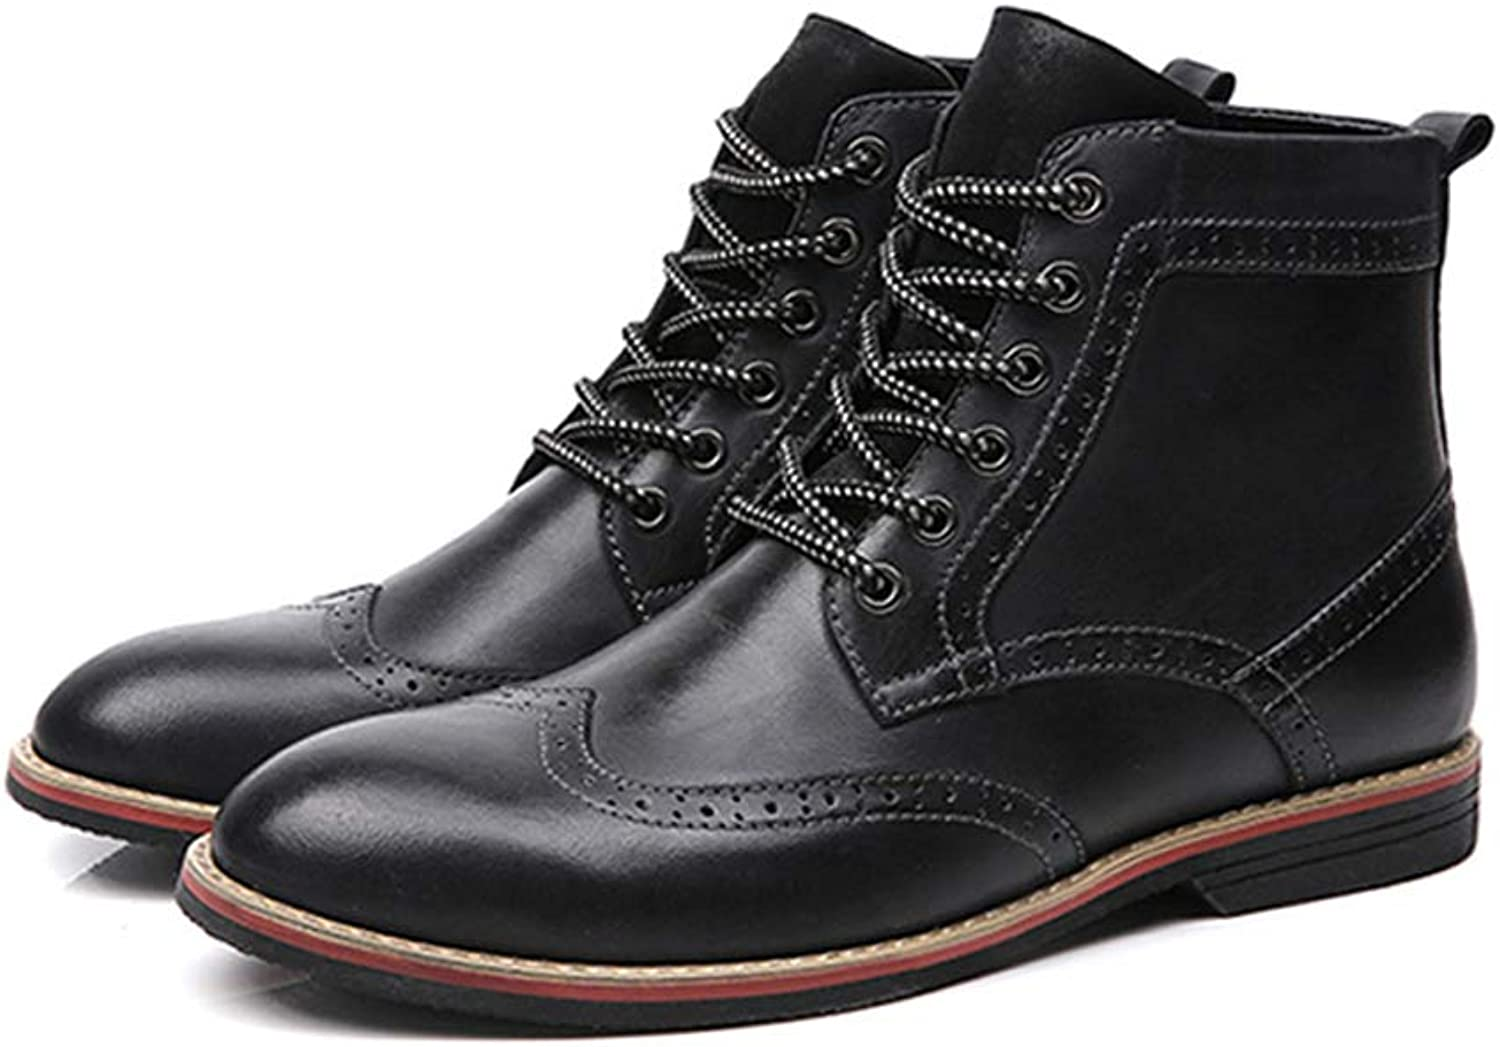 Punk Style New Bullock Carved Martin Boots Leather Boots Plus Velvet Large Size Boots